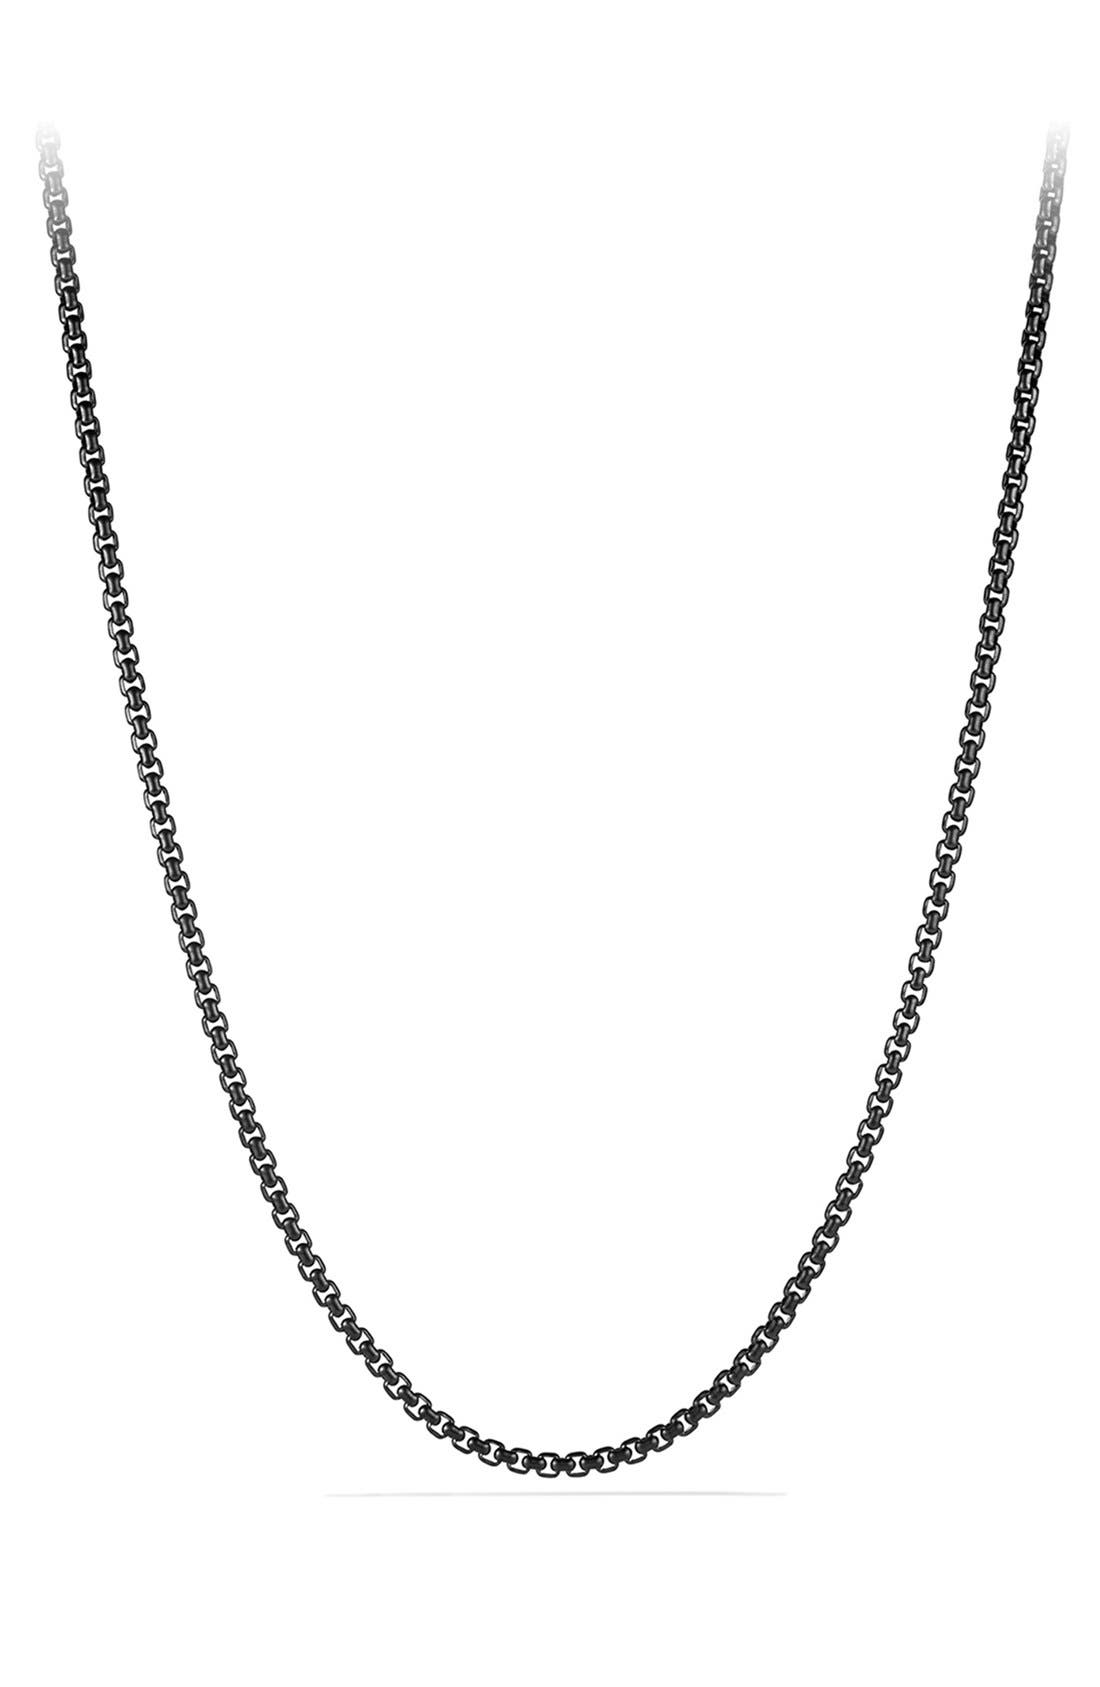 David Yurman 'Chain' Box Chain Necklace